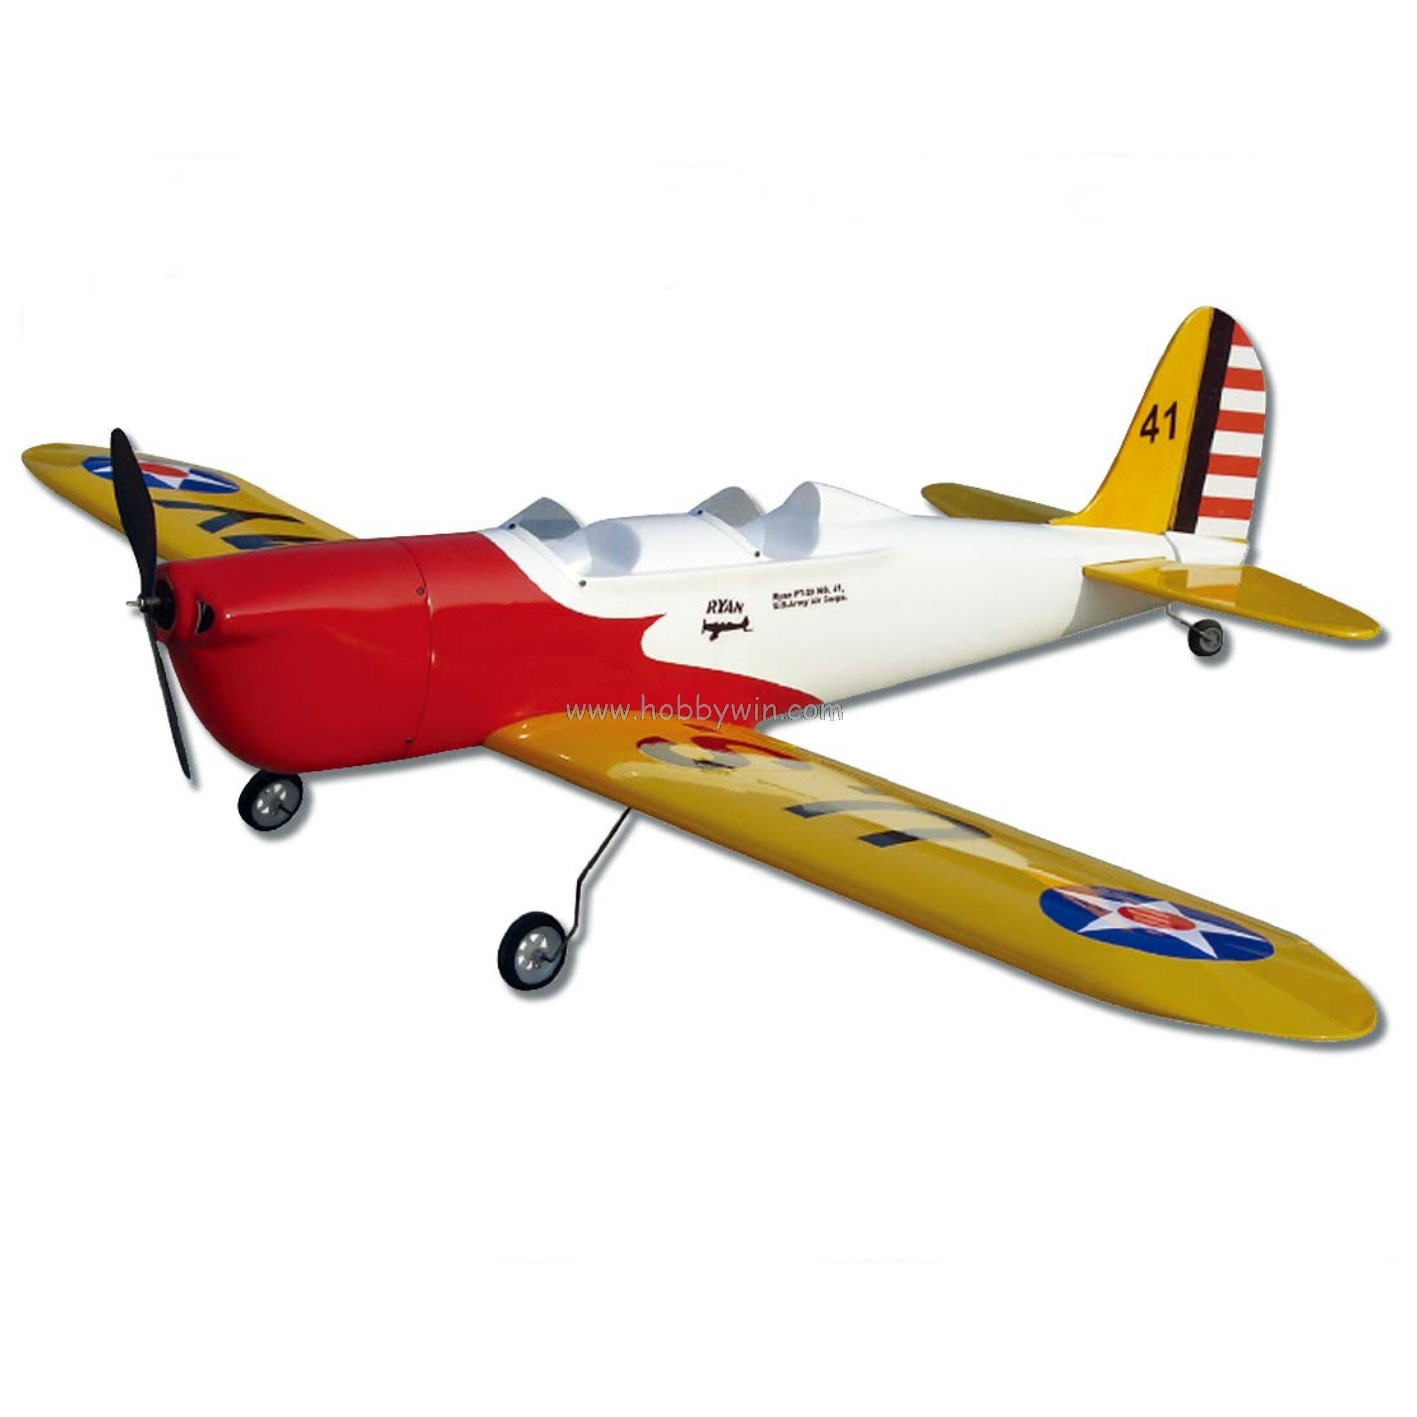 PT-20 Ryan 1100mm KIT without electric part Fiberglass & Wood RC model airplane image